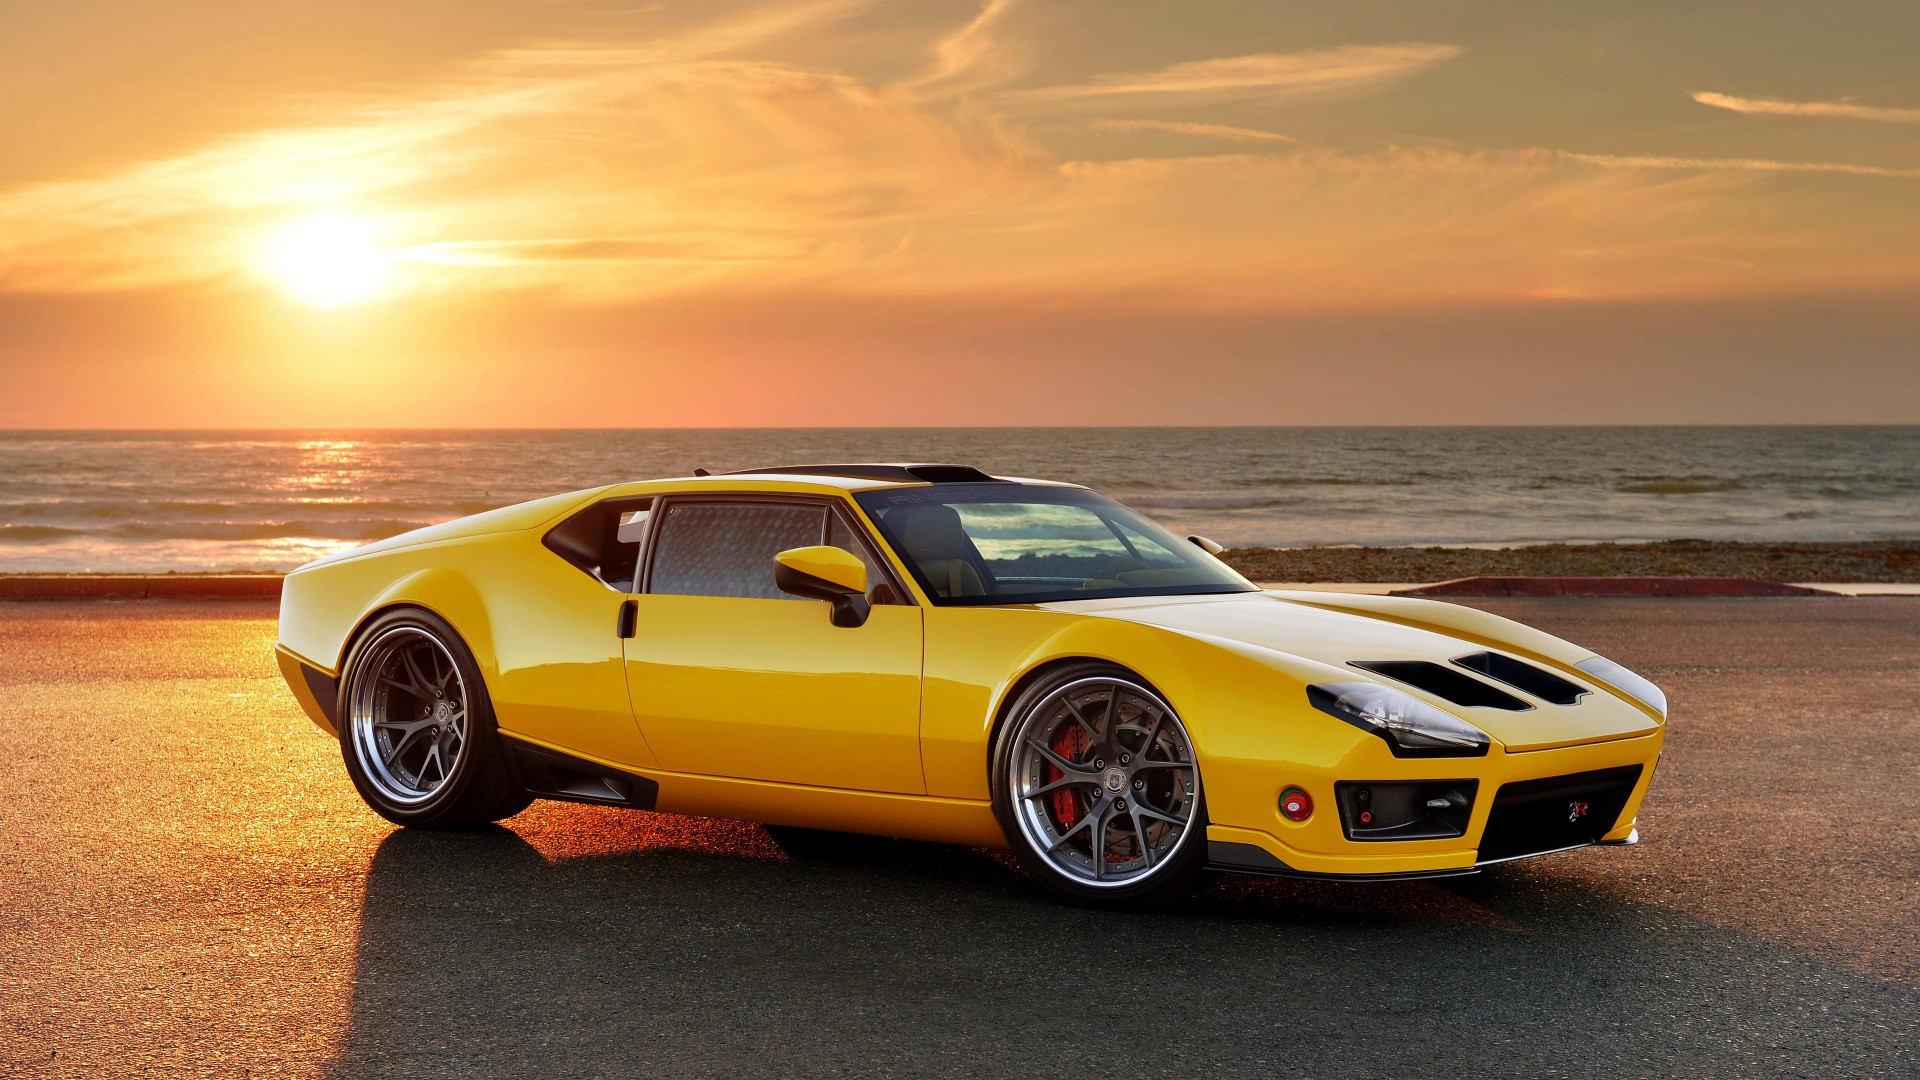 1971 Ringbrothers DeTomaso Pantera Wallpaper | HD Car ...